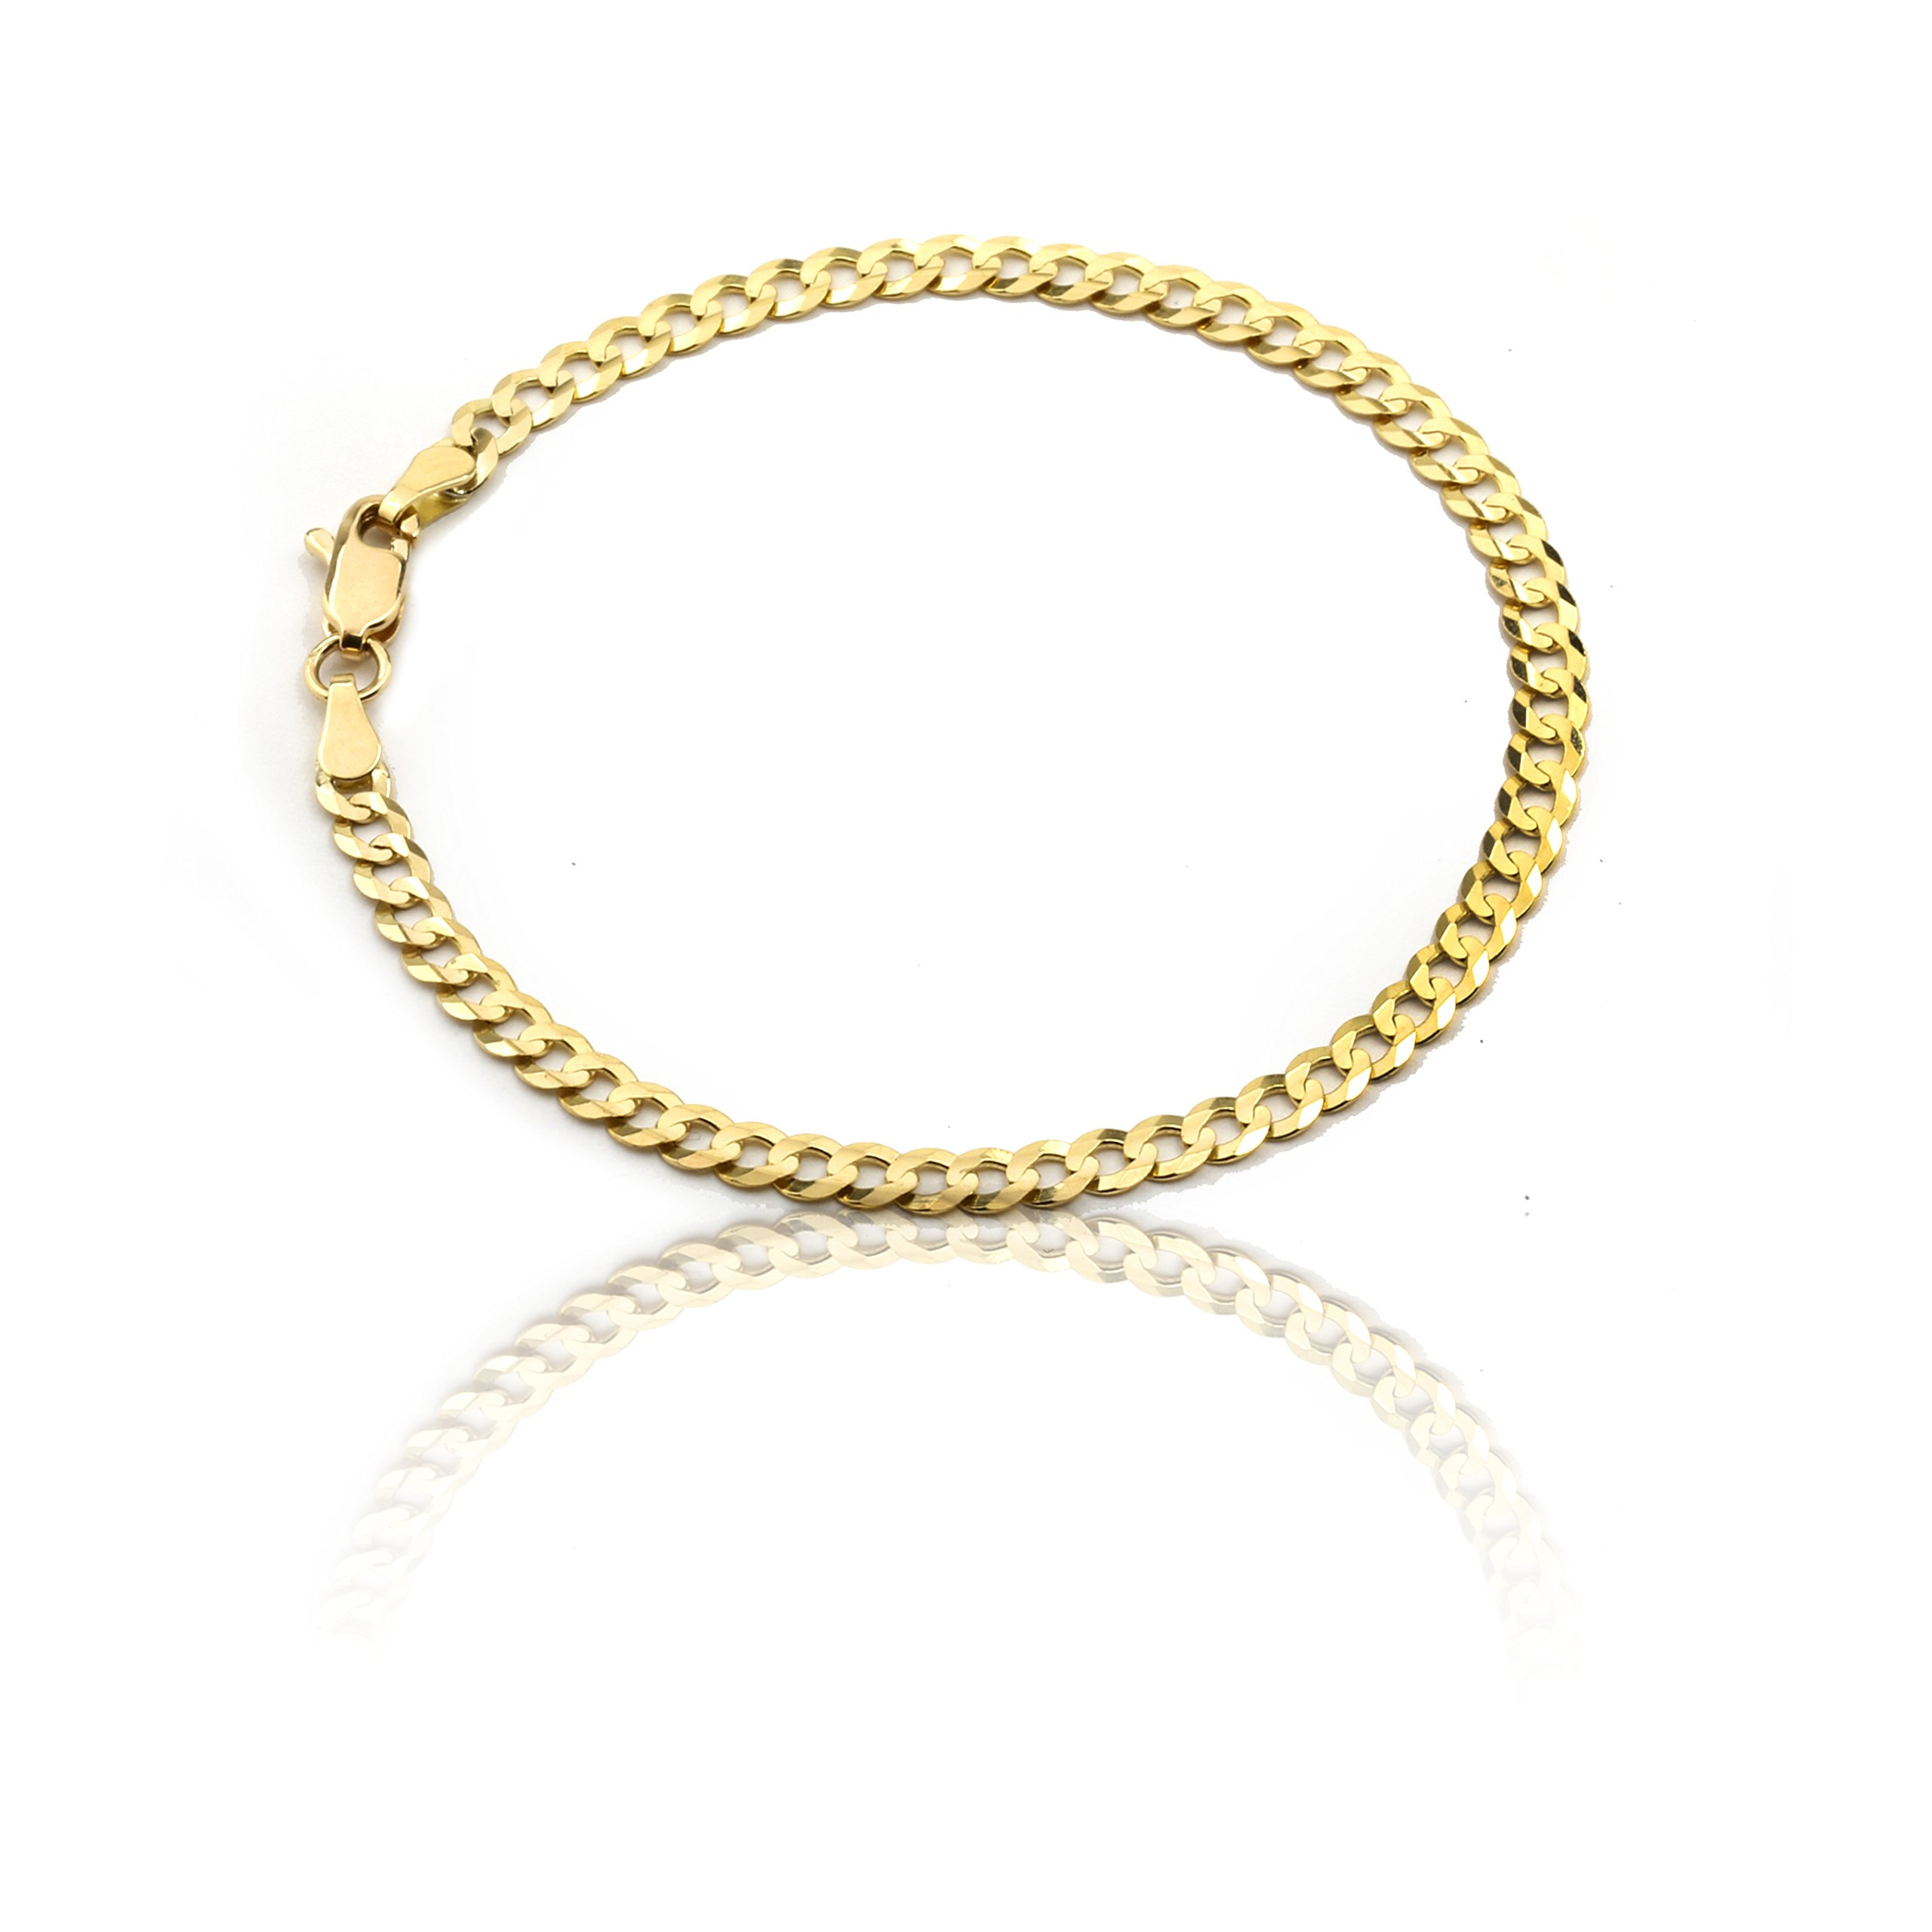 Floreo 7 Inch 10k Yellow Gold Curb Cuban Chain Bracelet for Men and Women, 0.16 Inch (4mm) by Floreo